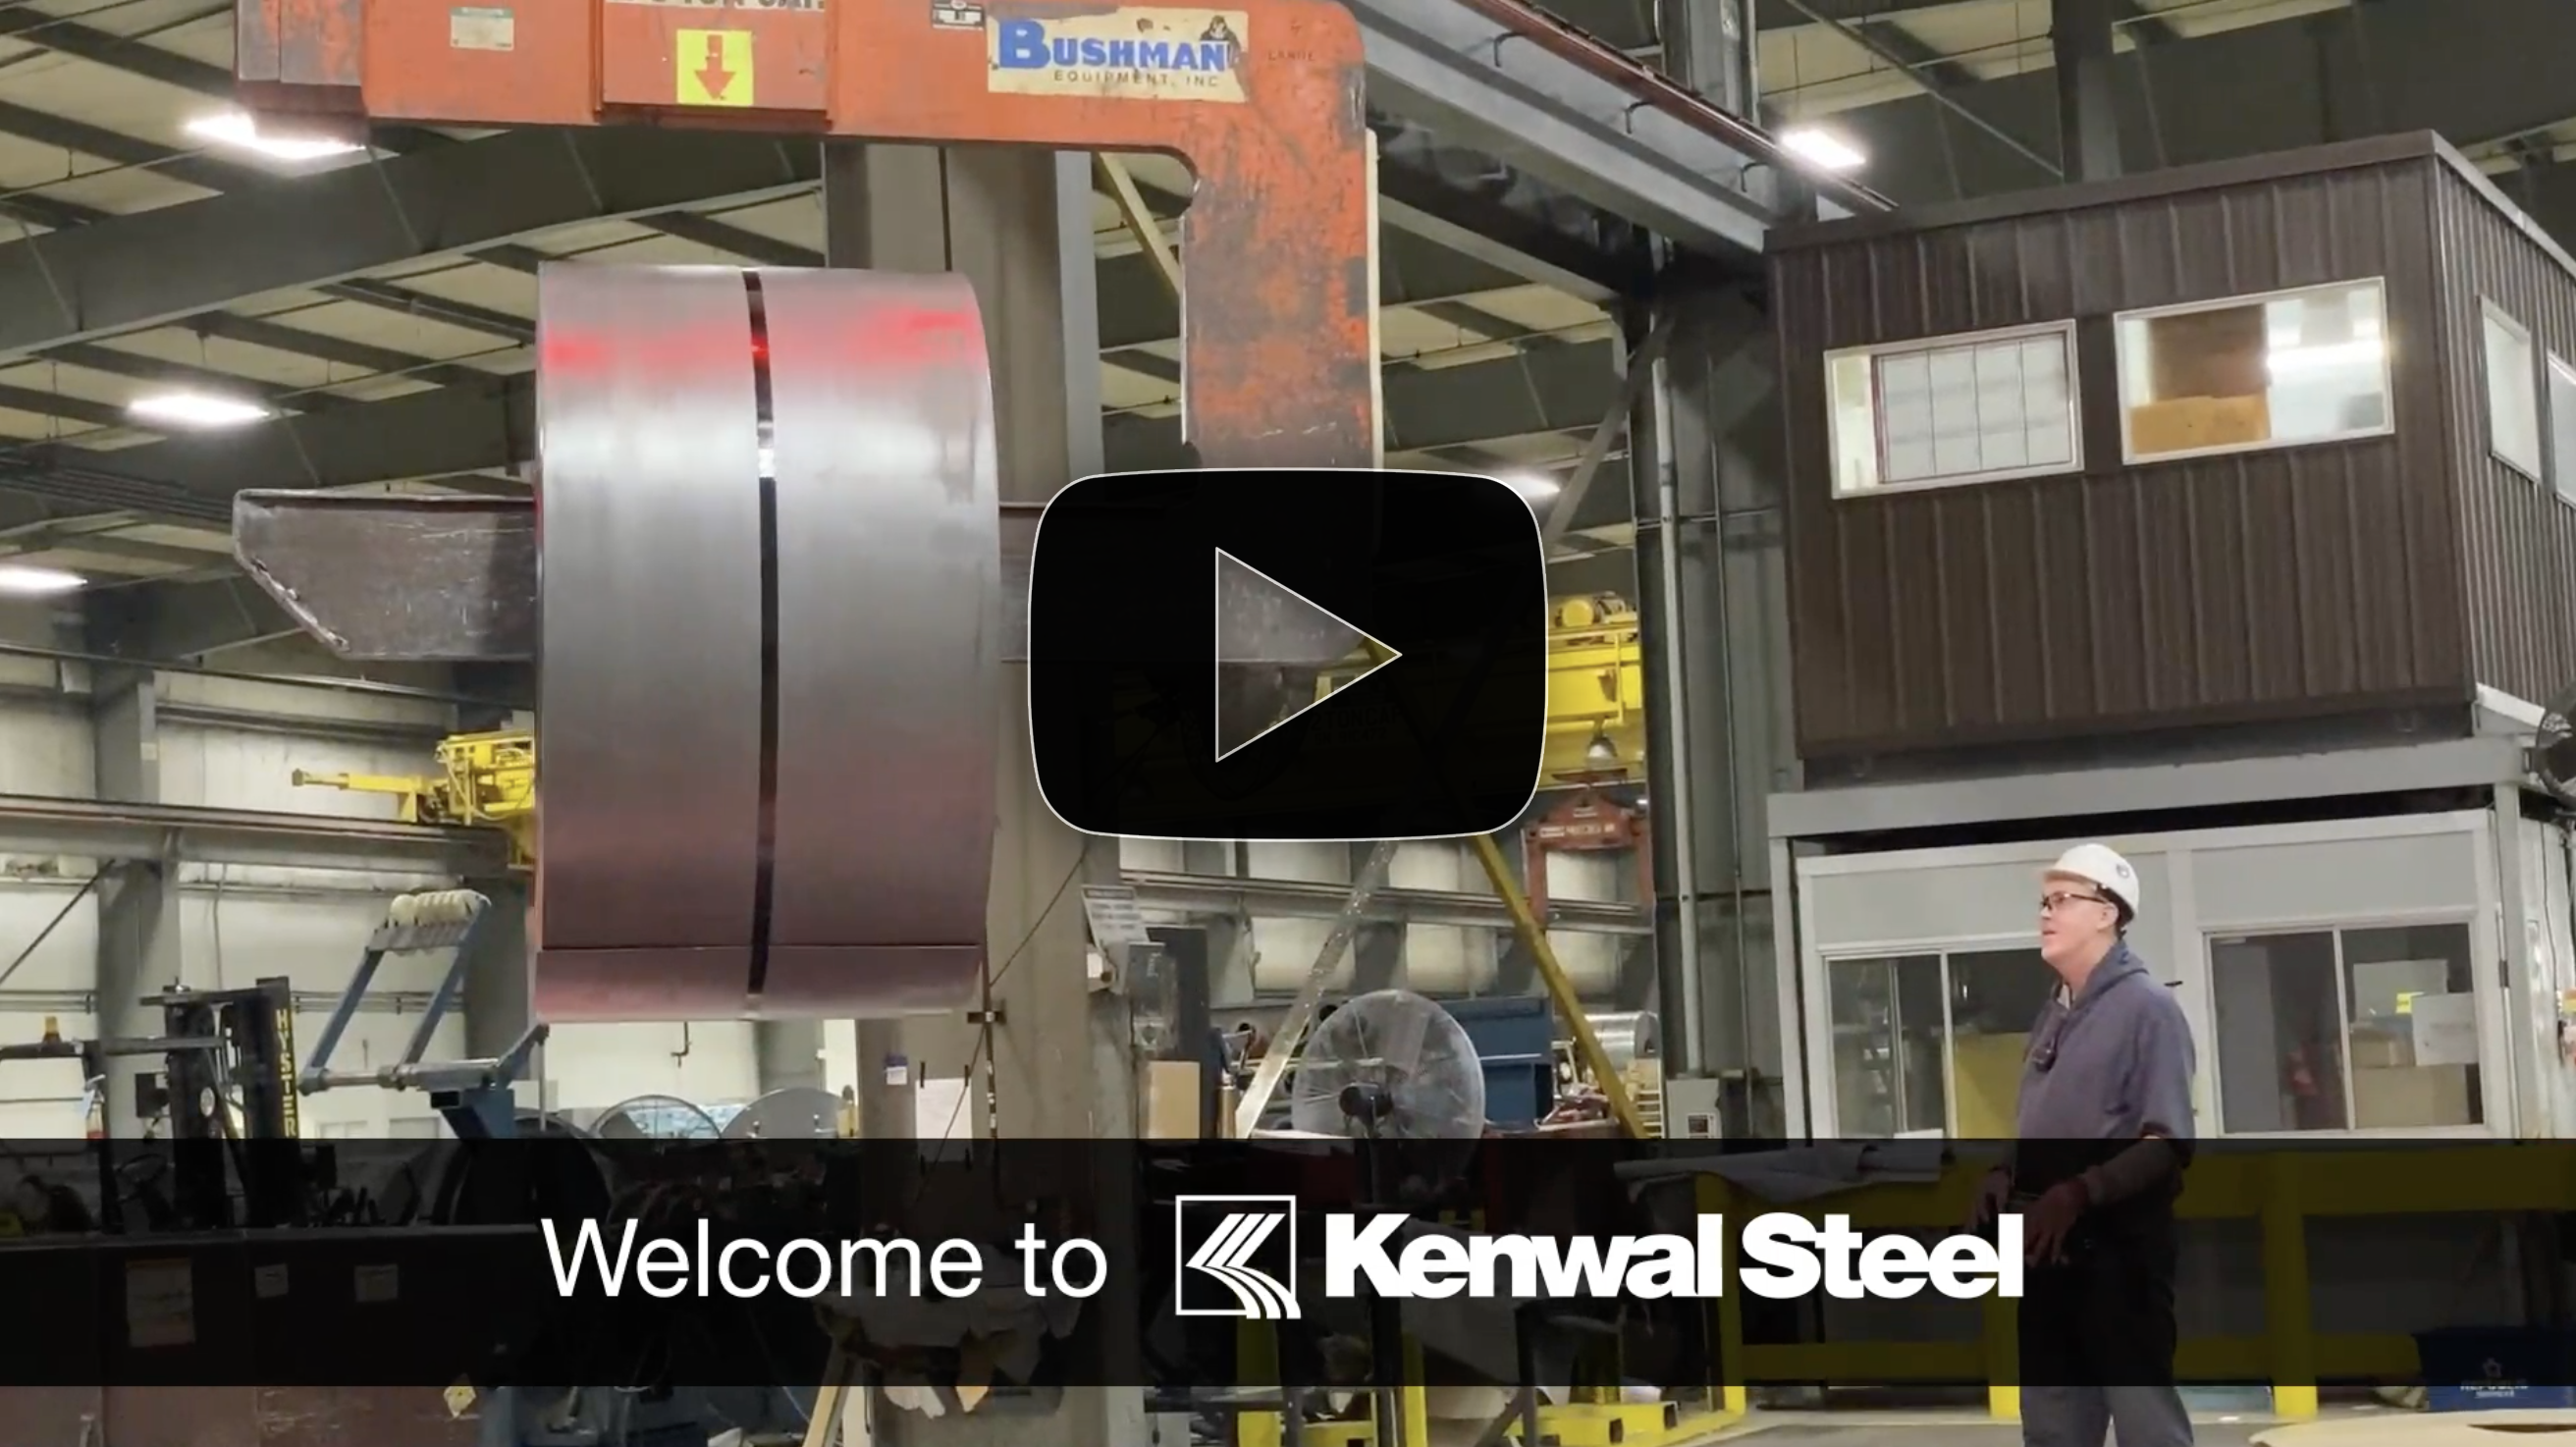 Welcome to Kenwal Steel - Corporate Overview Video